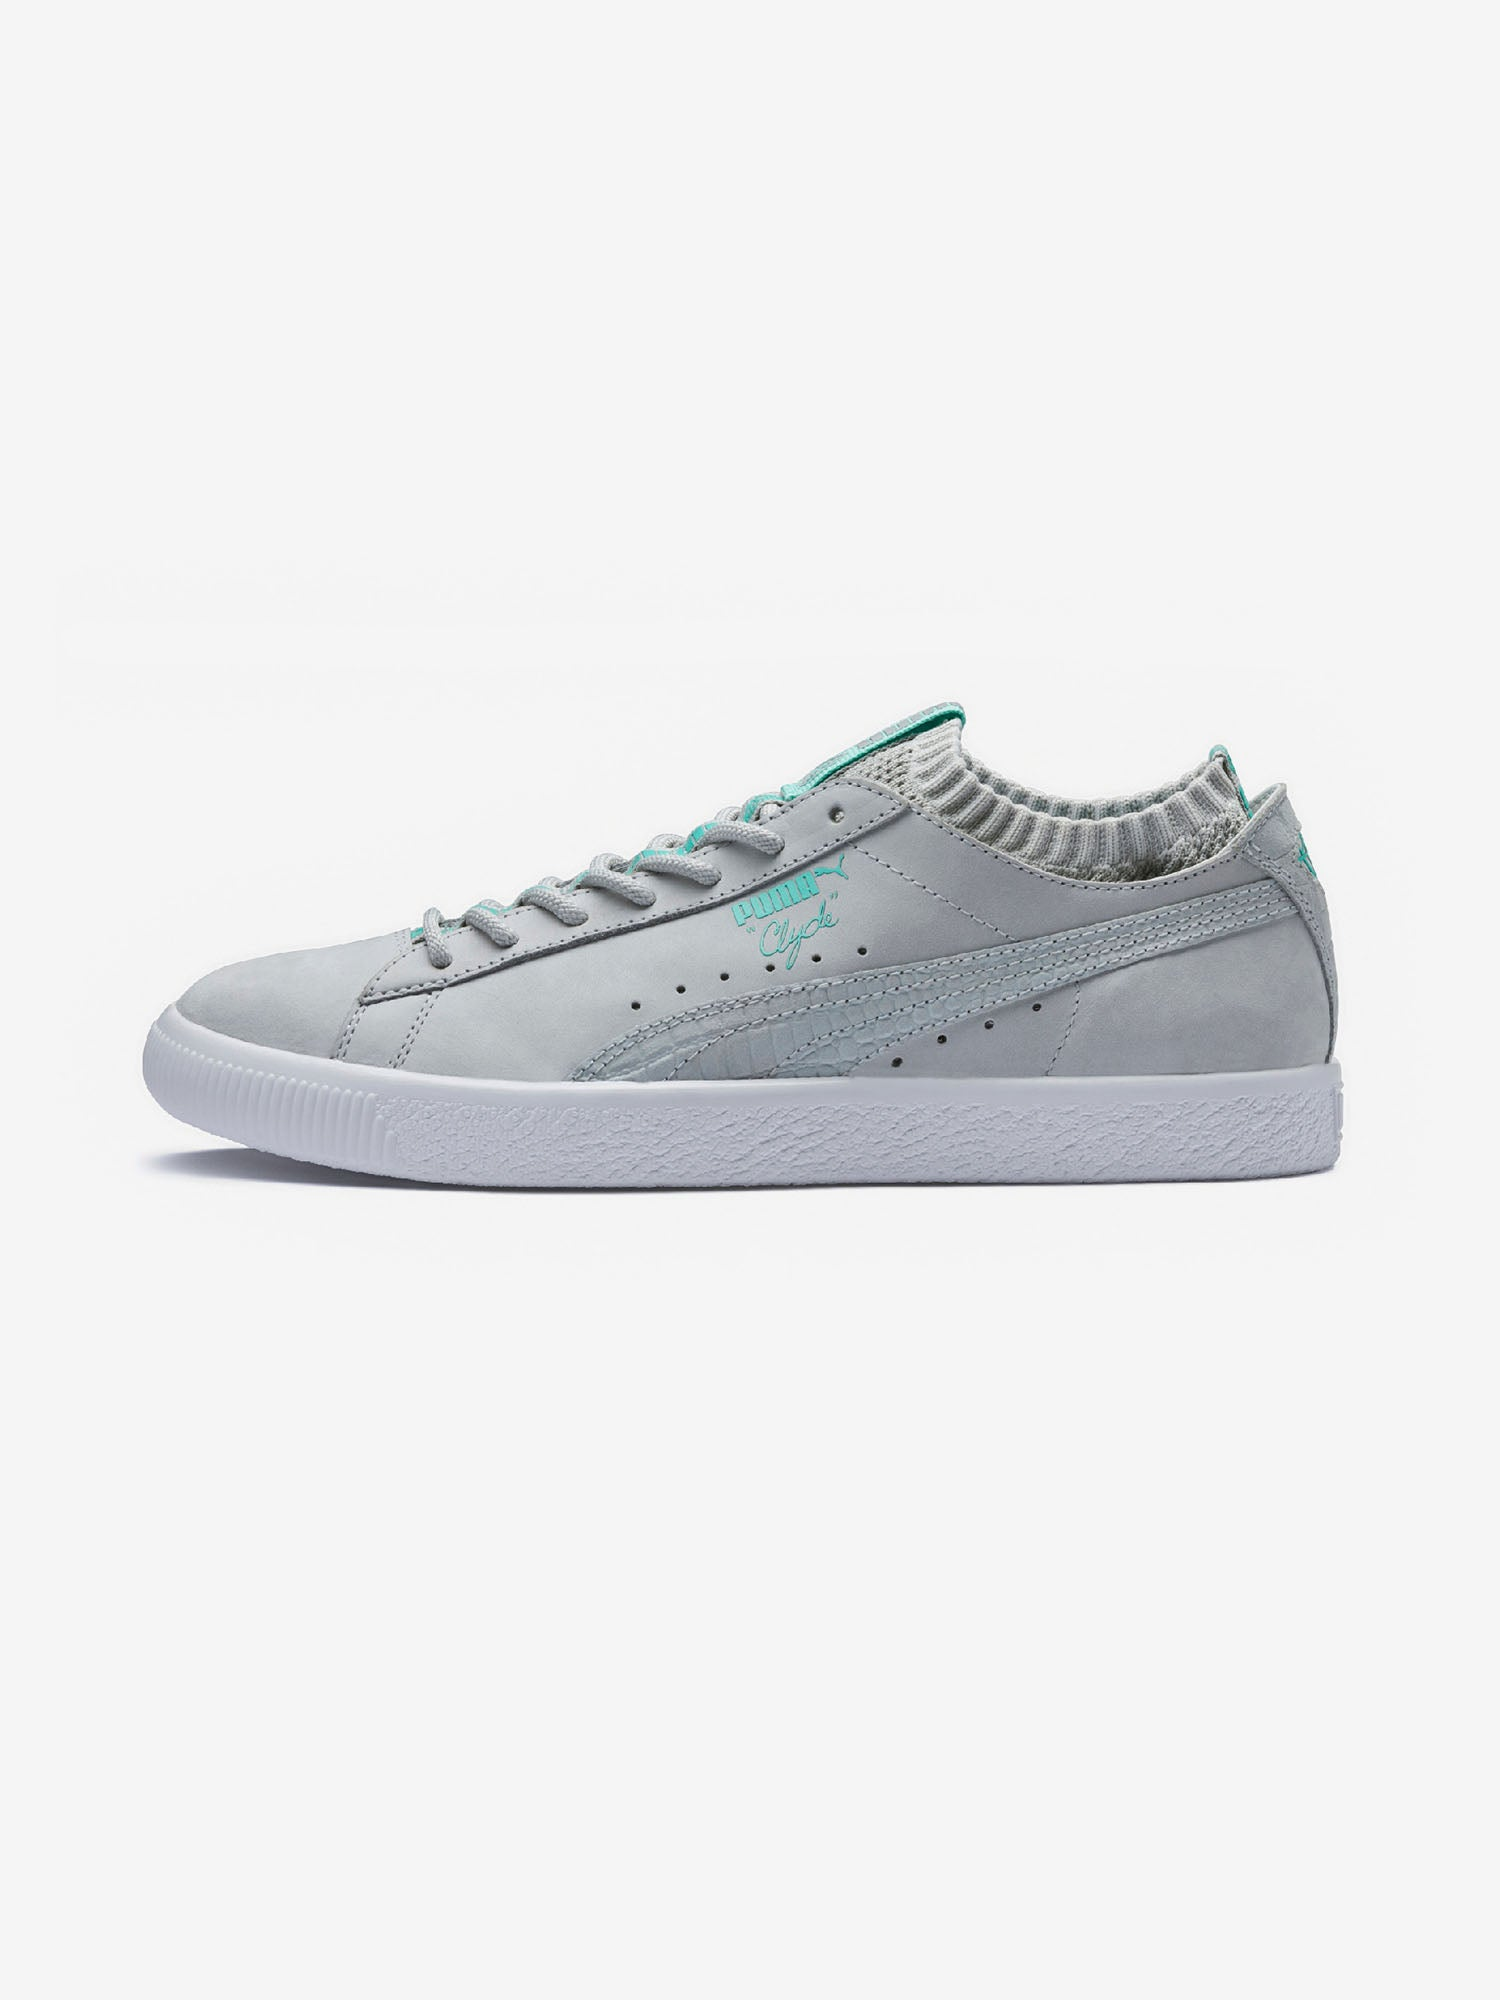 320585c62d9c67 Diamond Supply Co. DIAMOND x PUMA CLYDE SOCK LO